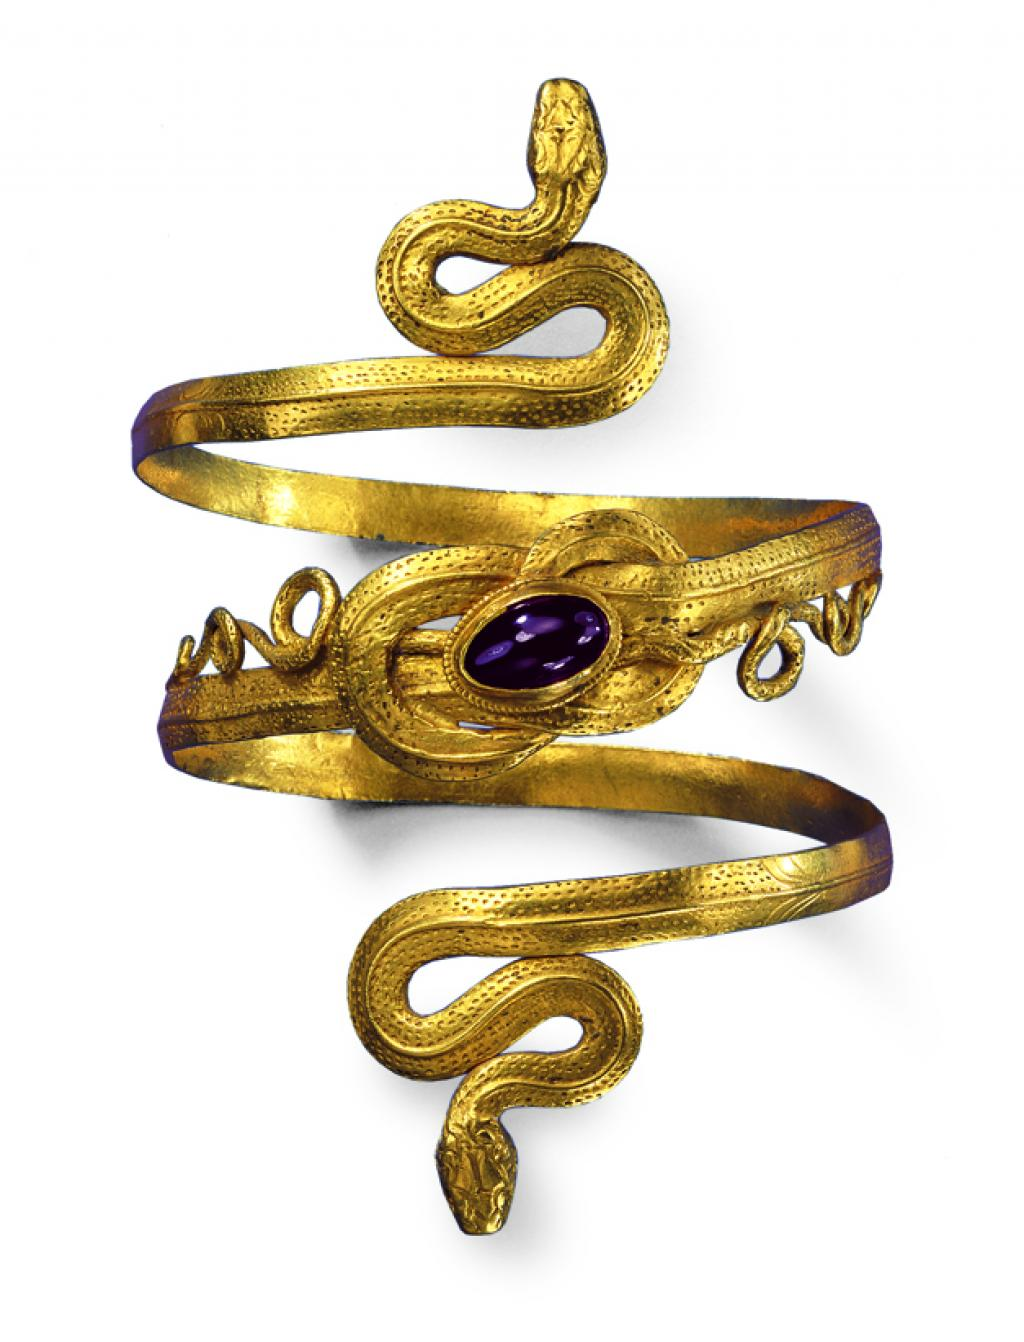 Greek-hellenistic snake bracelet | Gold, garnet | 3rd-2nd CBC | (c) SMP, Photo Günther Meyer